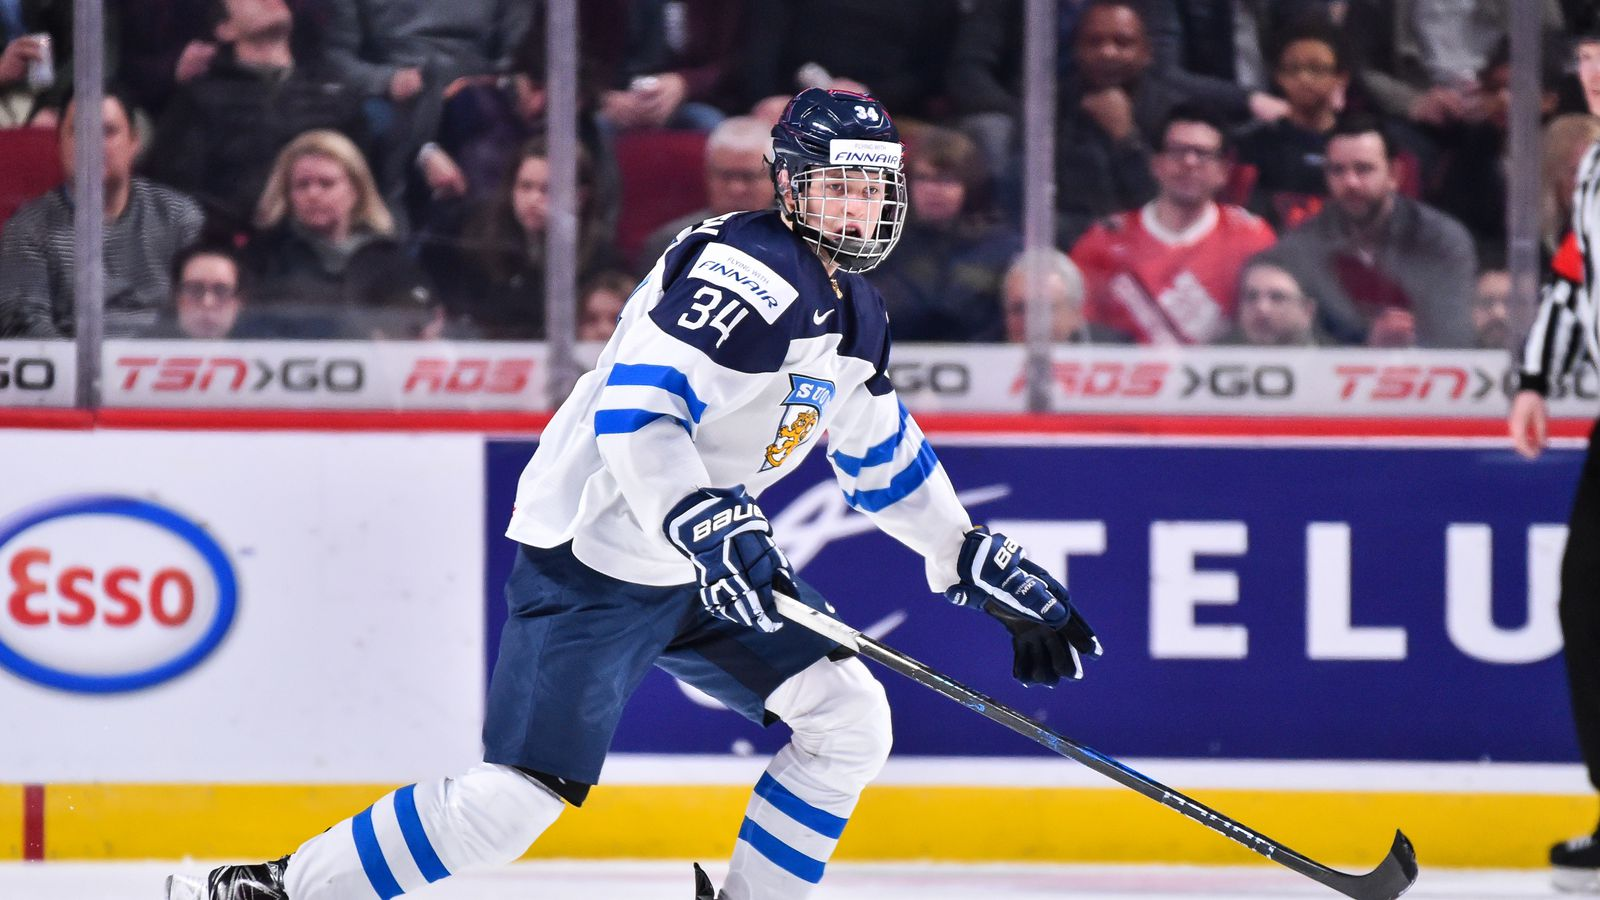 2017 NHL Draft Profile: Big and powerful, Kristian Vesalainen could give the Canes something they lack